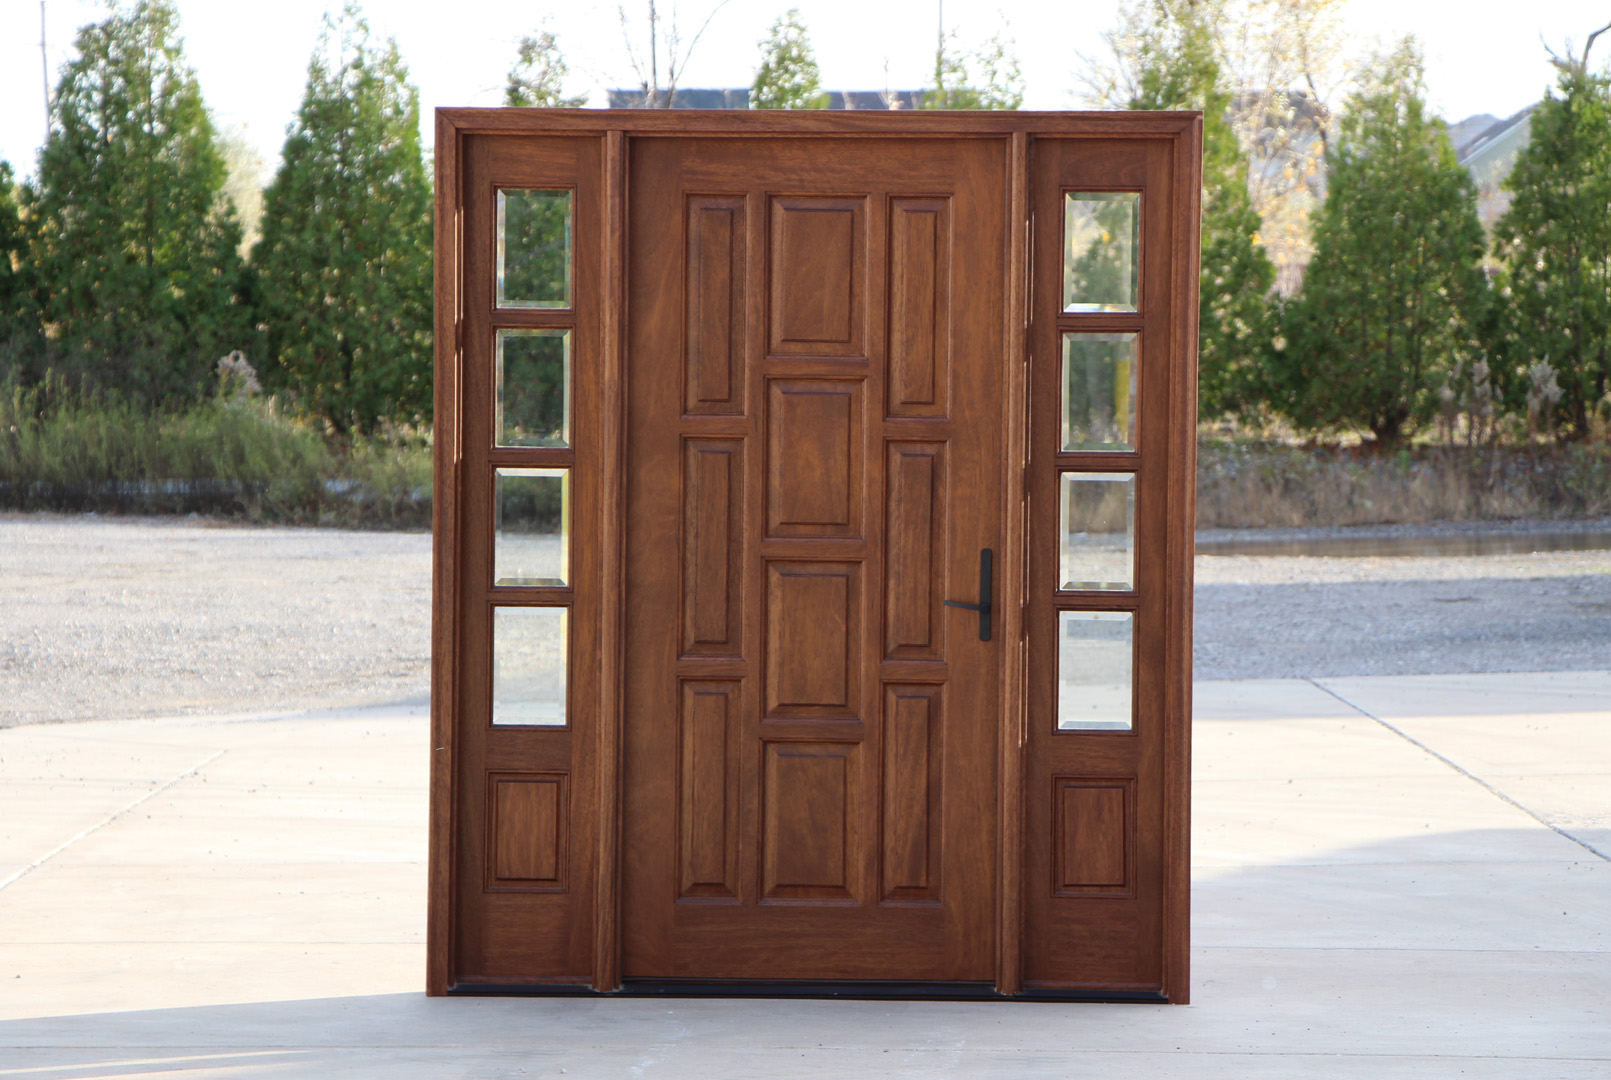 exterior mahogany door with sidelights. Black Bedroom Furniture Sets. Home Design Ideas